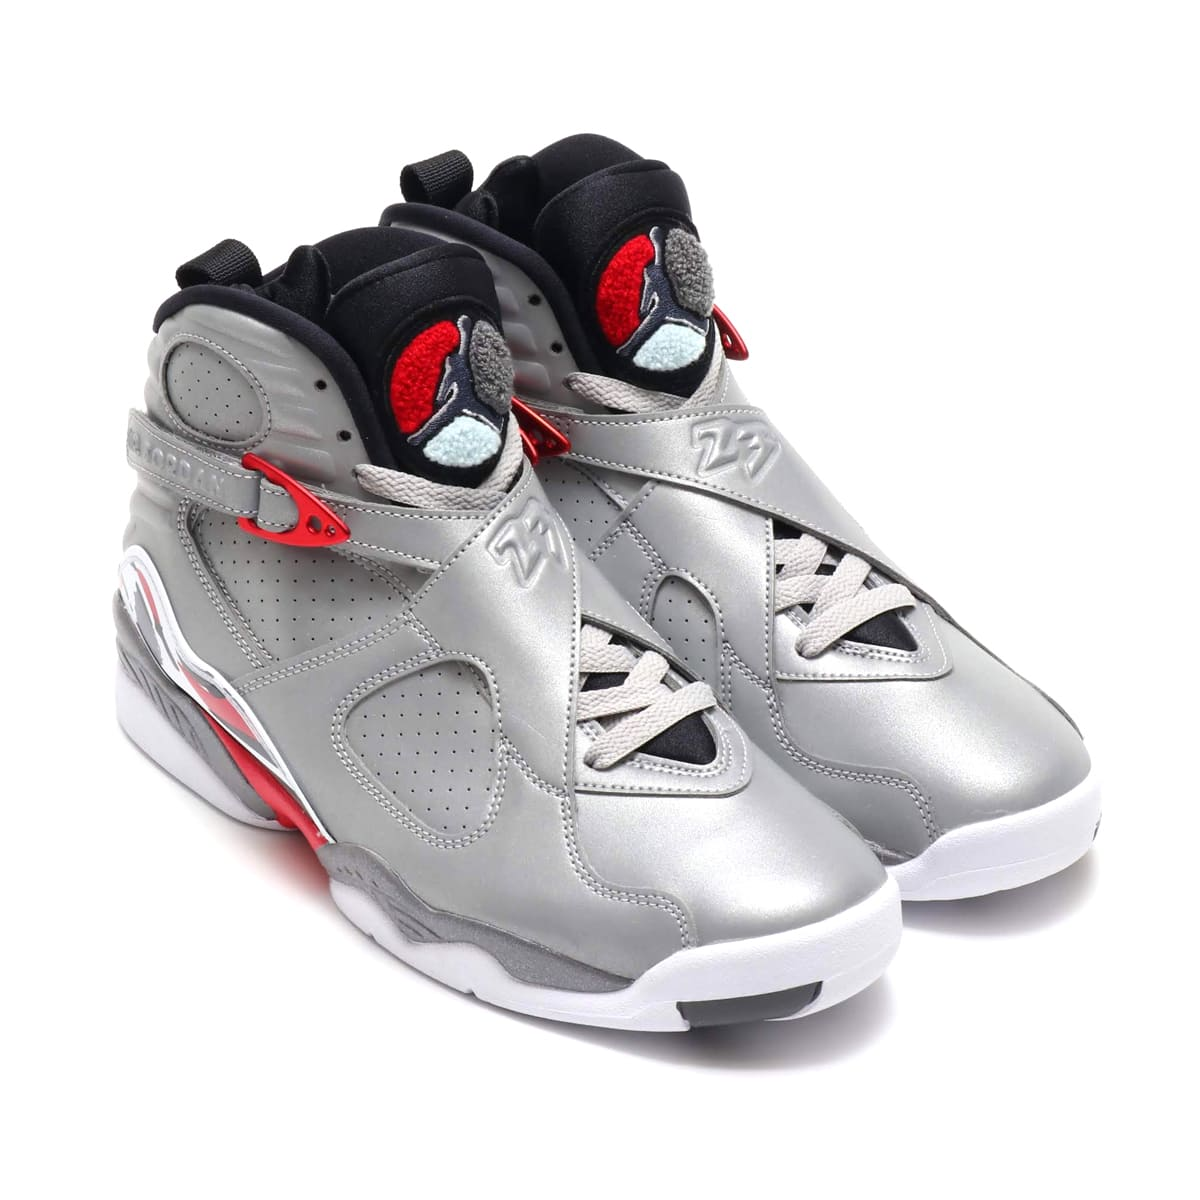 NIKE AIR JORDAN 8 RETRO SP REFLECT SILVER/HYPER BLUE-TRUE RED 19SU-S_photo_large